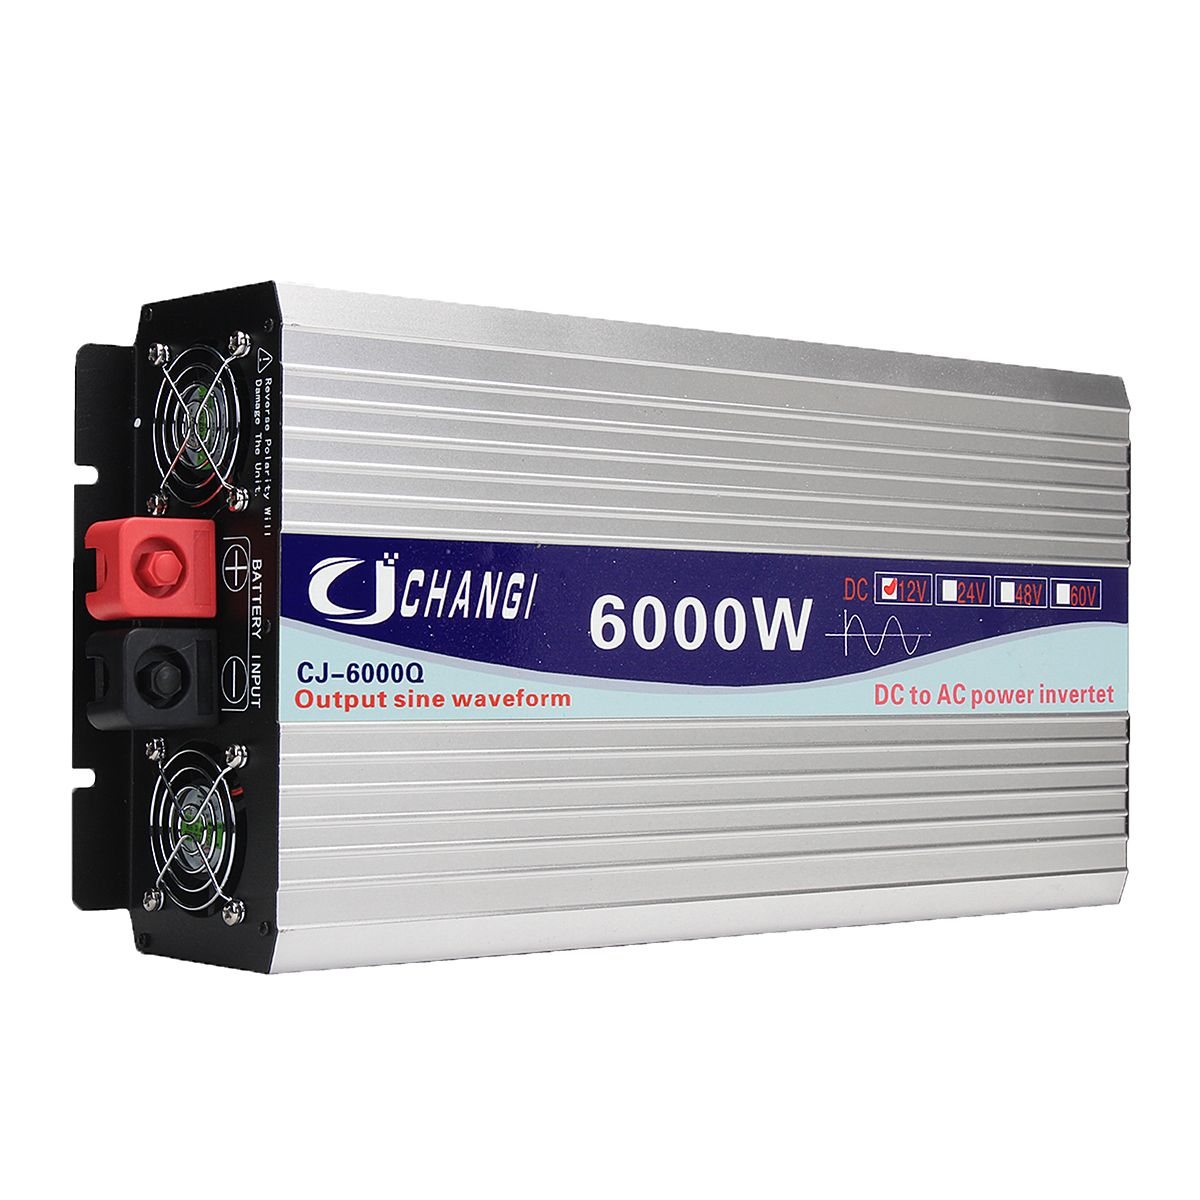 Power Inverter 8211 Intelligent Solar Pure 8211 From 129 99 Usd Power Inverters Sine Wave Waves